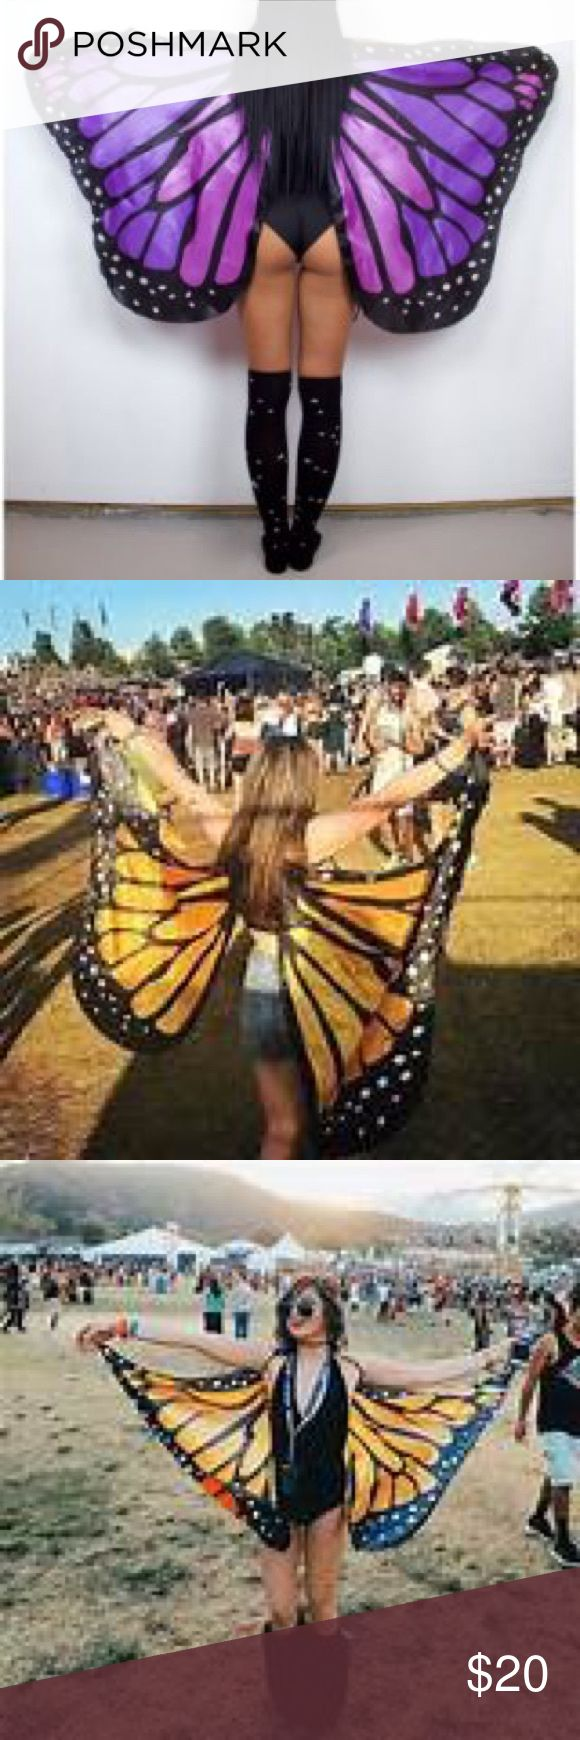 Butterfly wings Brand new never used. Price firm! I paid $38 online   Festival rave edm themooncult iheartraves electric forest edc alienoutfitters Accessories